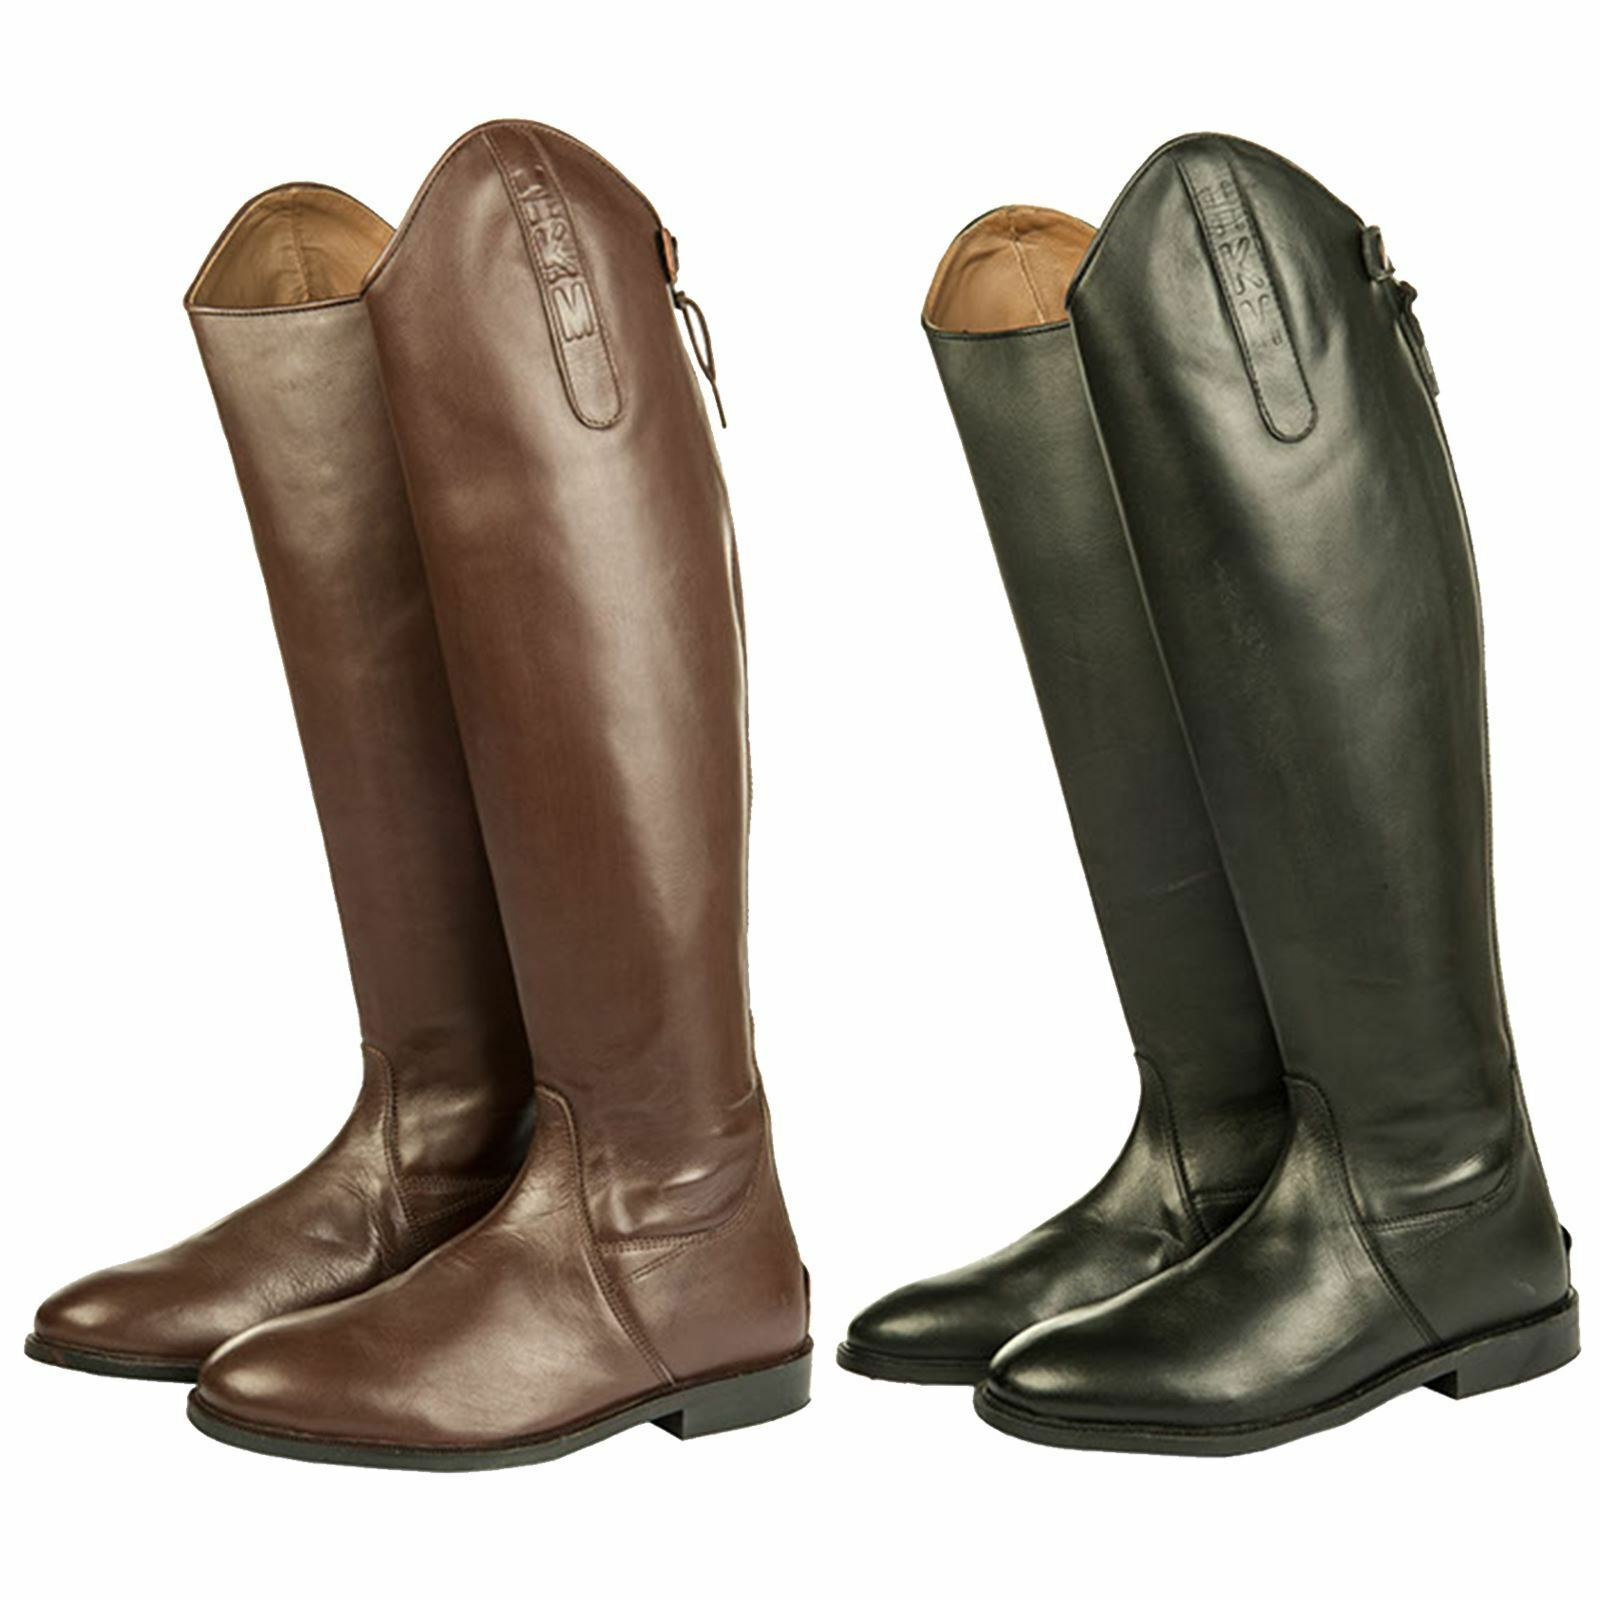 HKM Equestrian Adults  Soft Leather Narrow Width Horse Riding Long Stiefel